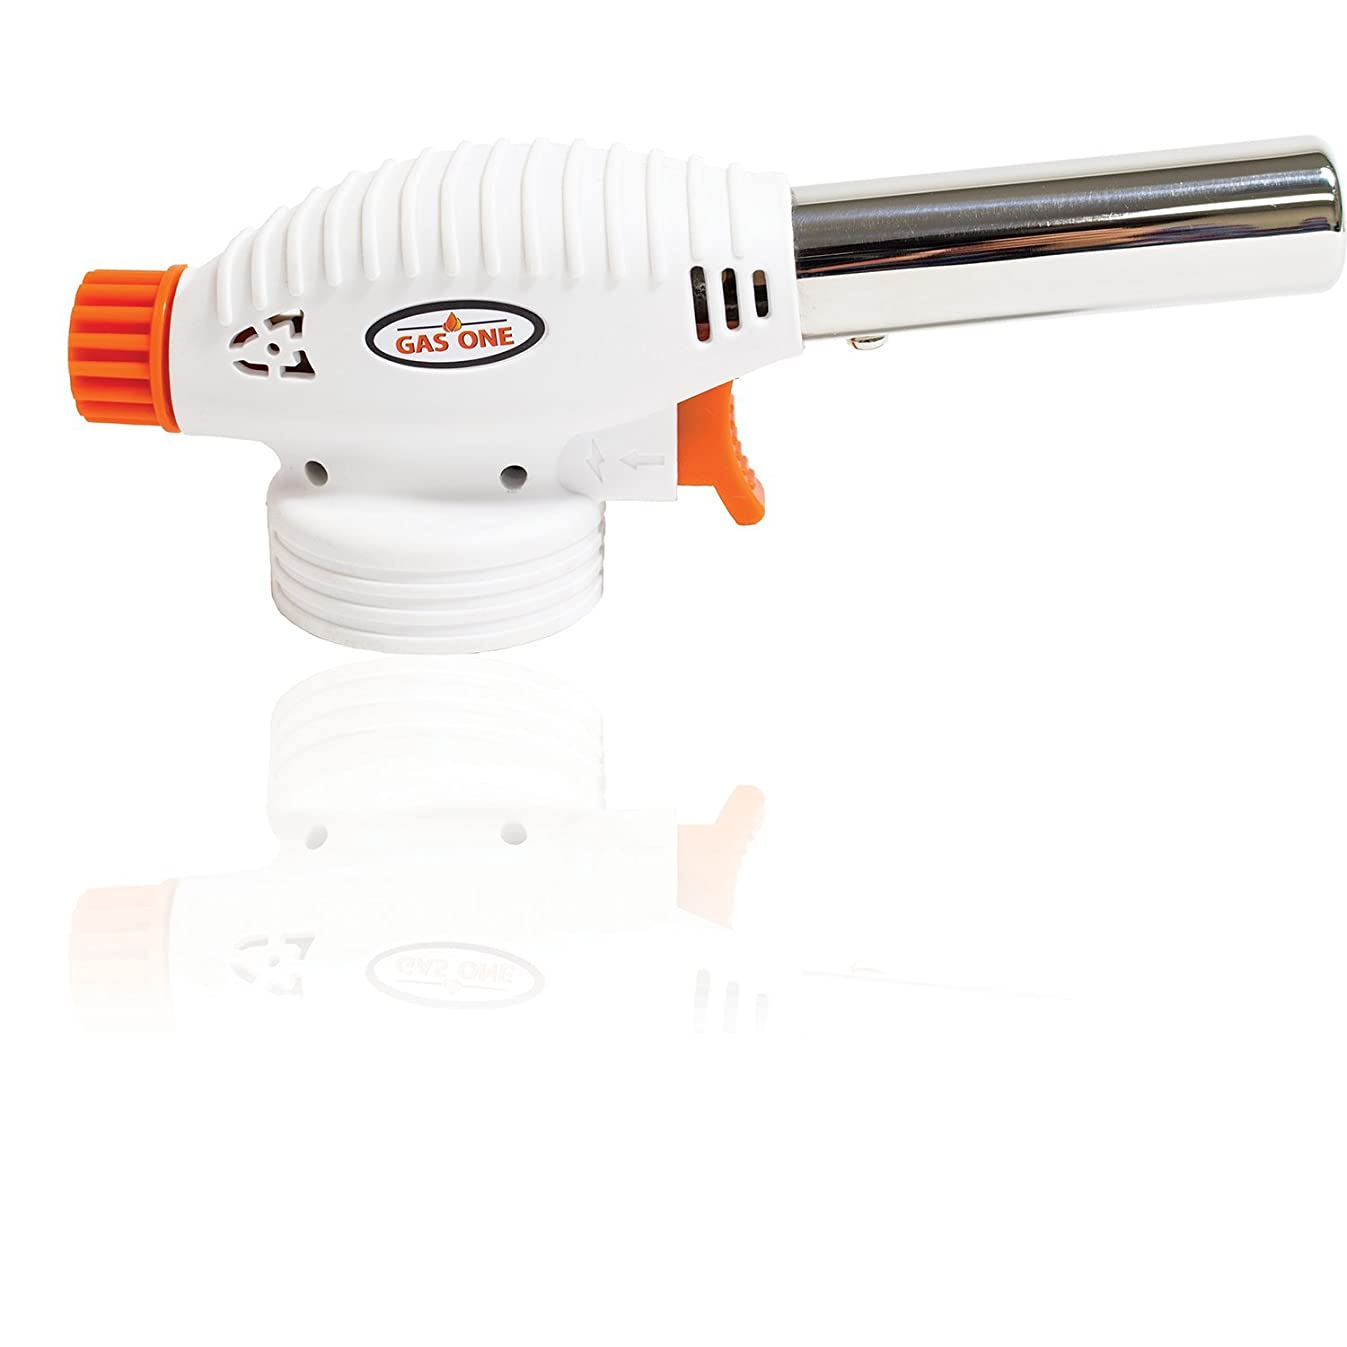 GasOne Cooking Torch Anti Flare Technology - Culinary Torch - Food Torch For Home Cooking & Professional use GT-099